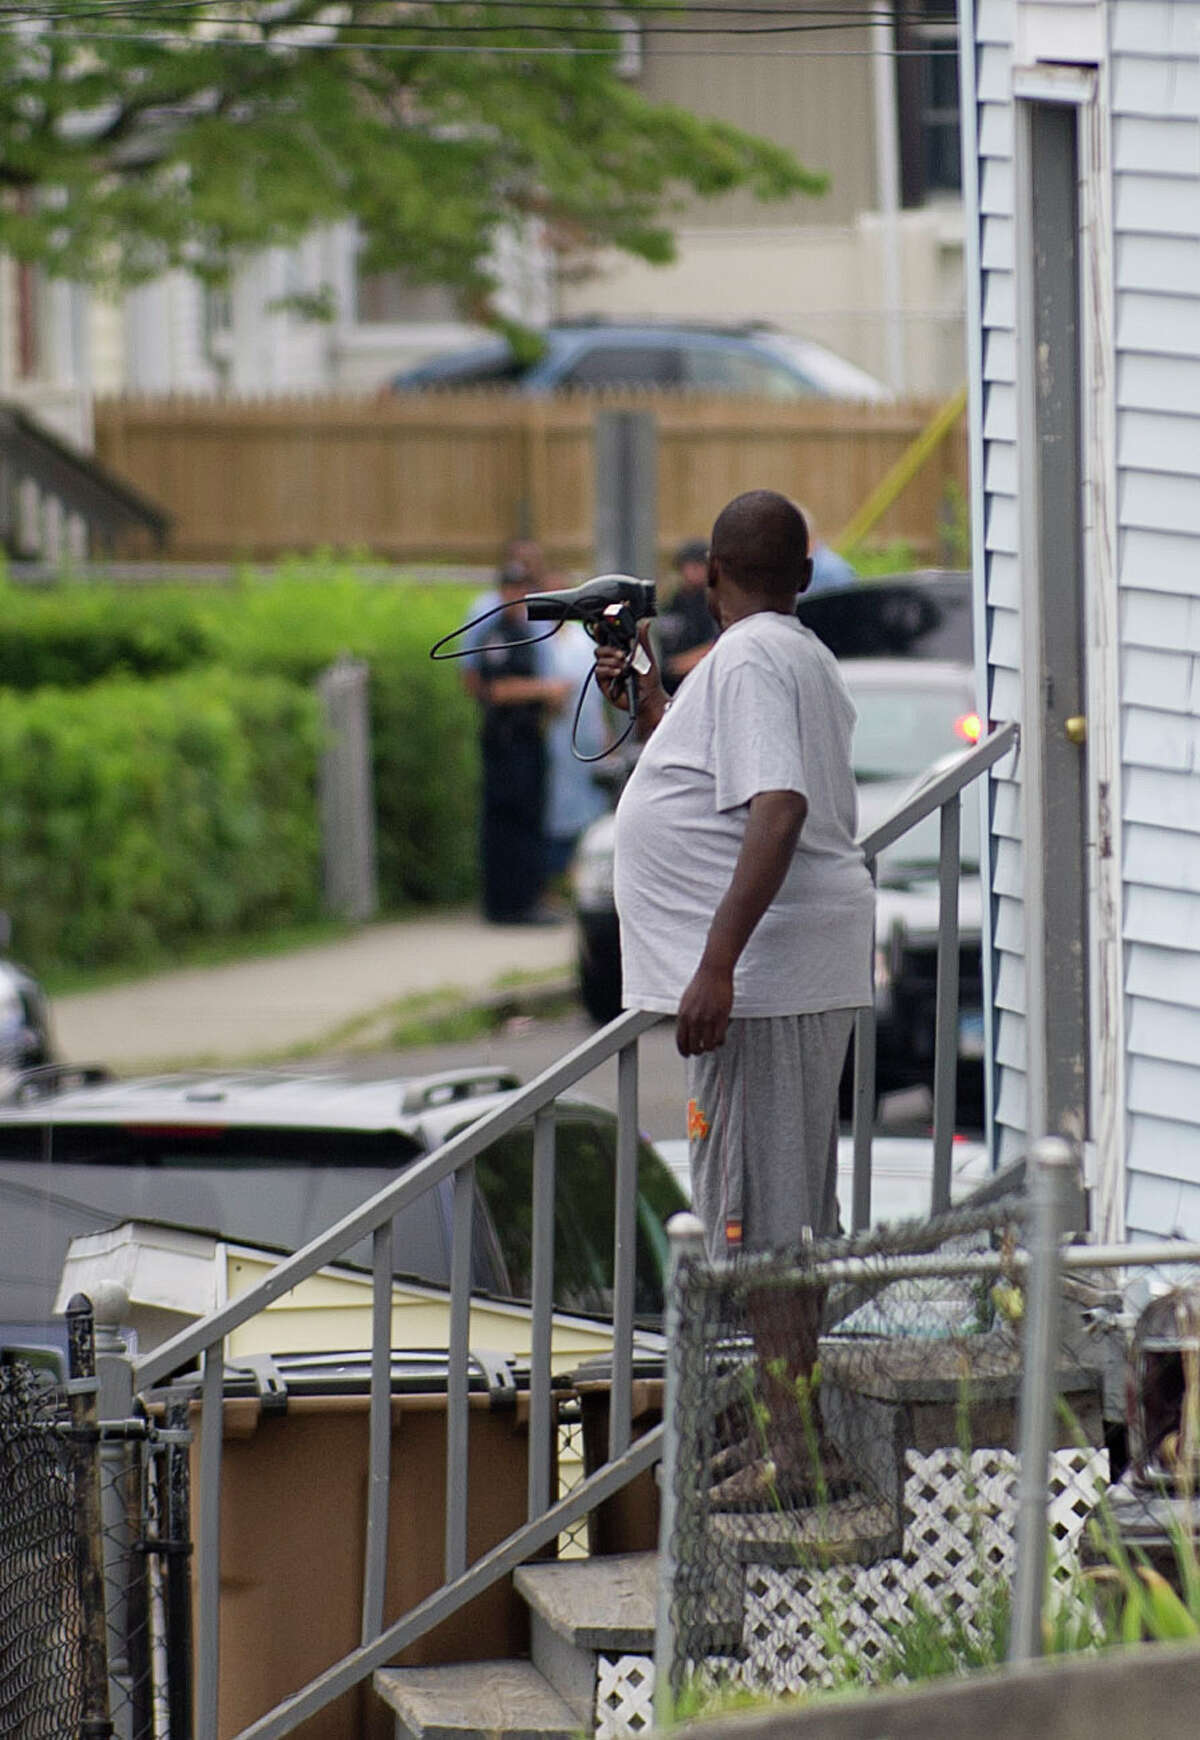 A man holding a hair dryer exits the house at 100 Warren Street in Stamford, Conn., where he was subsequently arrested by police who were called for a report of a possibly suicidal man with a gun on Thursday, August 1, 2013.